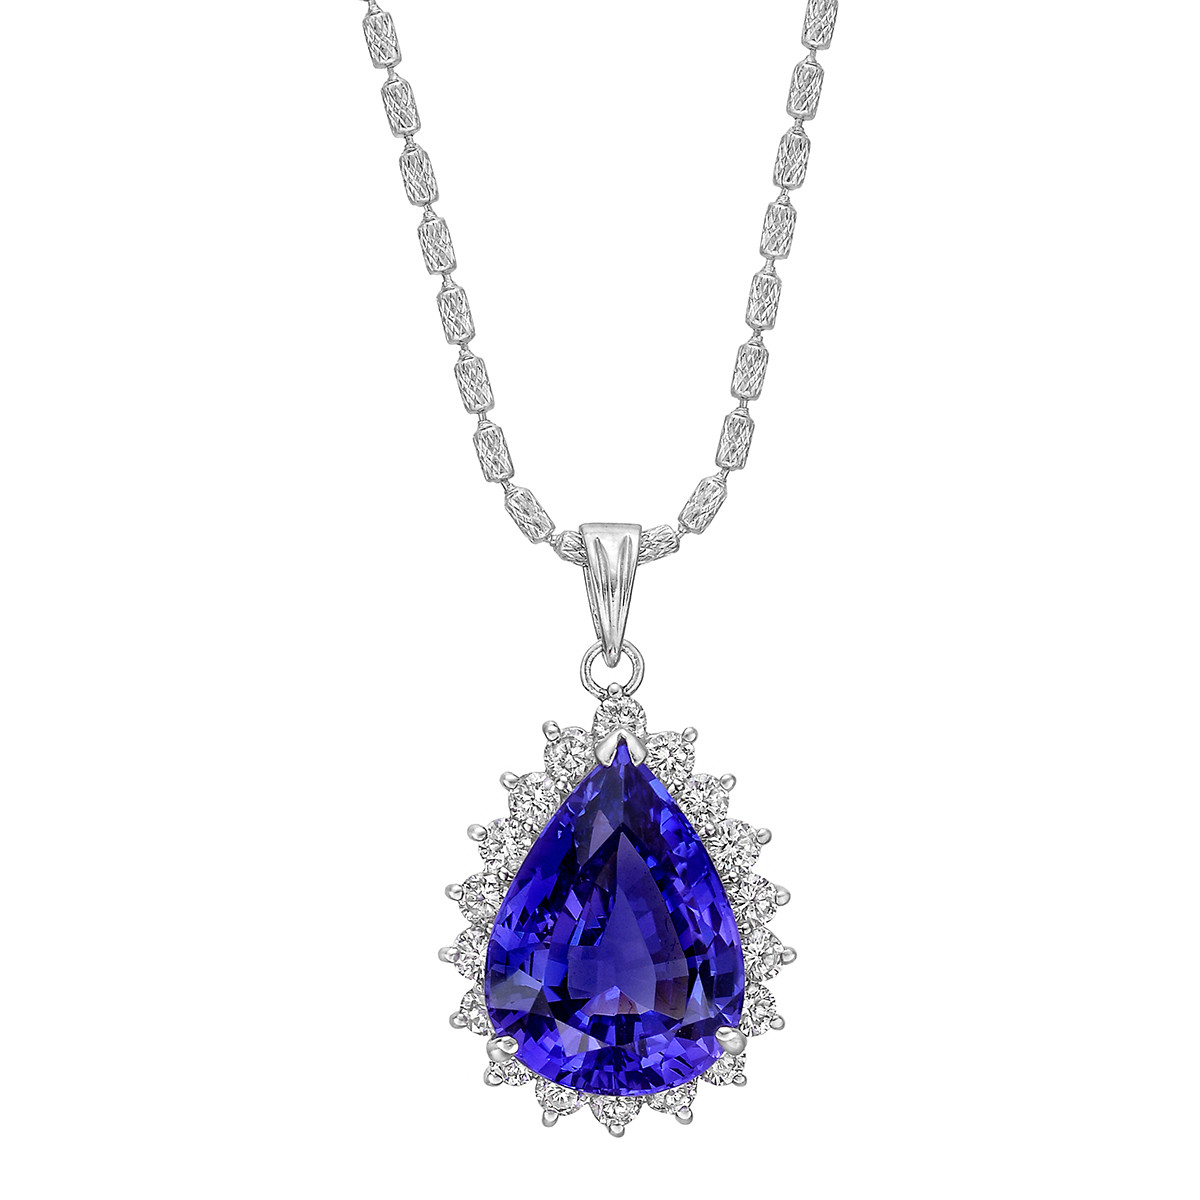 10.35ct Tanzanite & Diamond Pendant Necklace